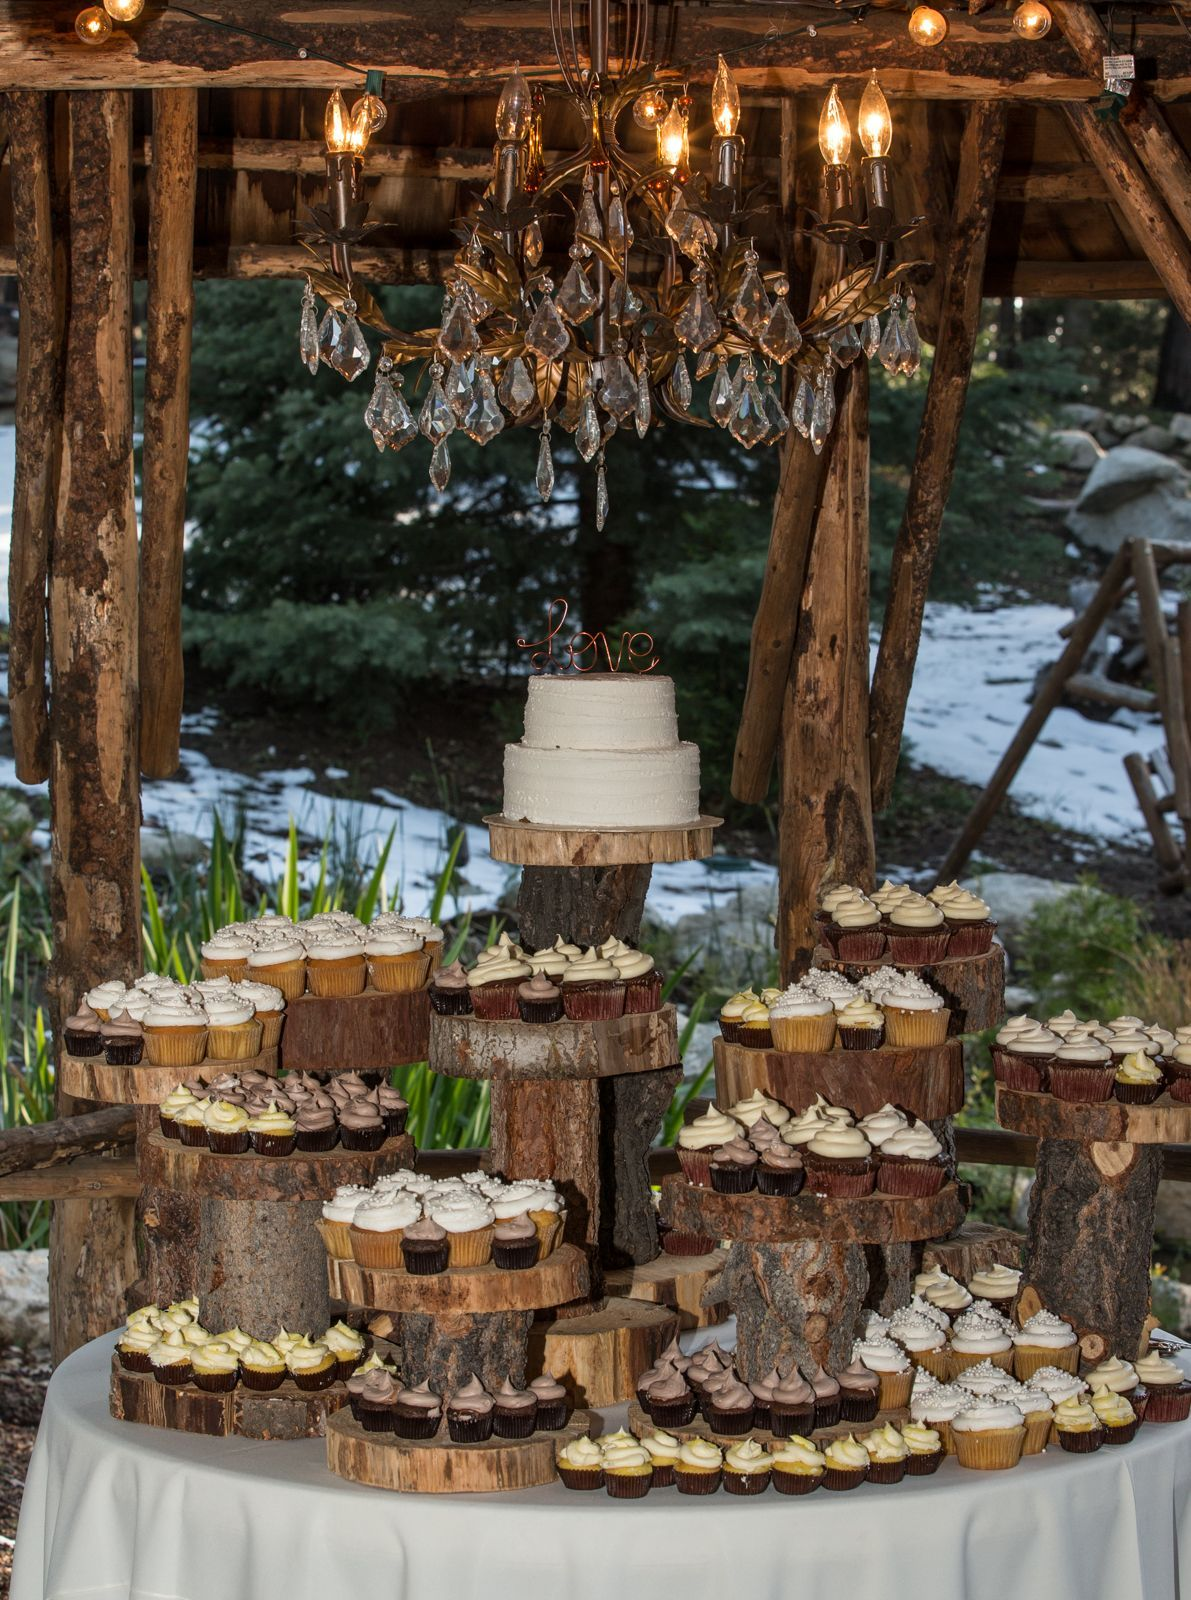 tiered wedding cake with cupcakes is an alternative to a multi